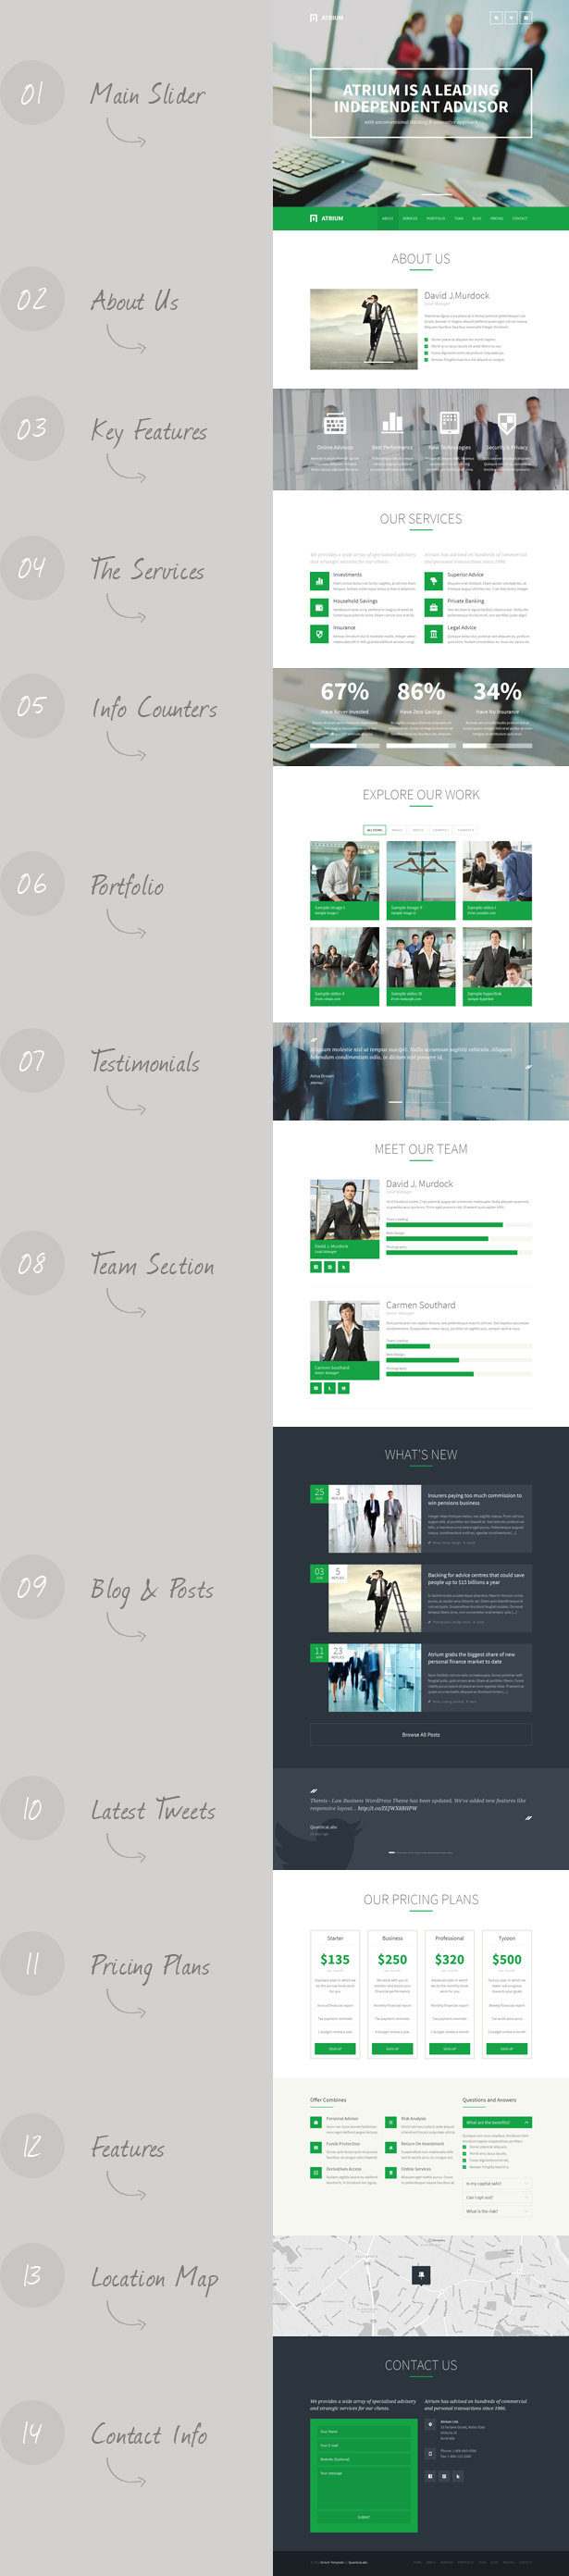 Check The Changelog Atrium – Responsive Corporate One Page Template Is A  Parallax, Responsive Corporate One Page Template, Suitable For Business Or